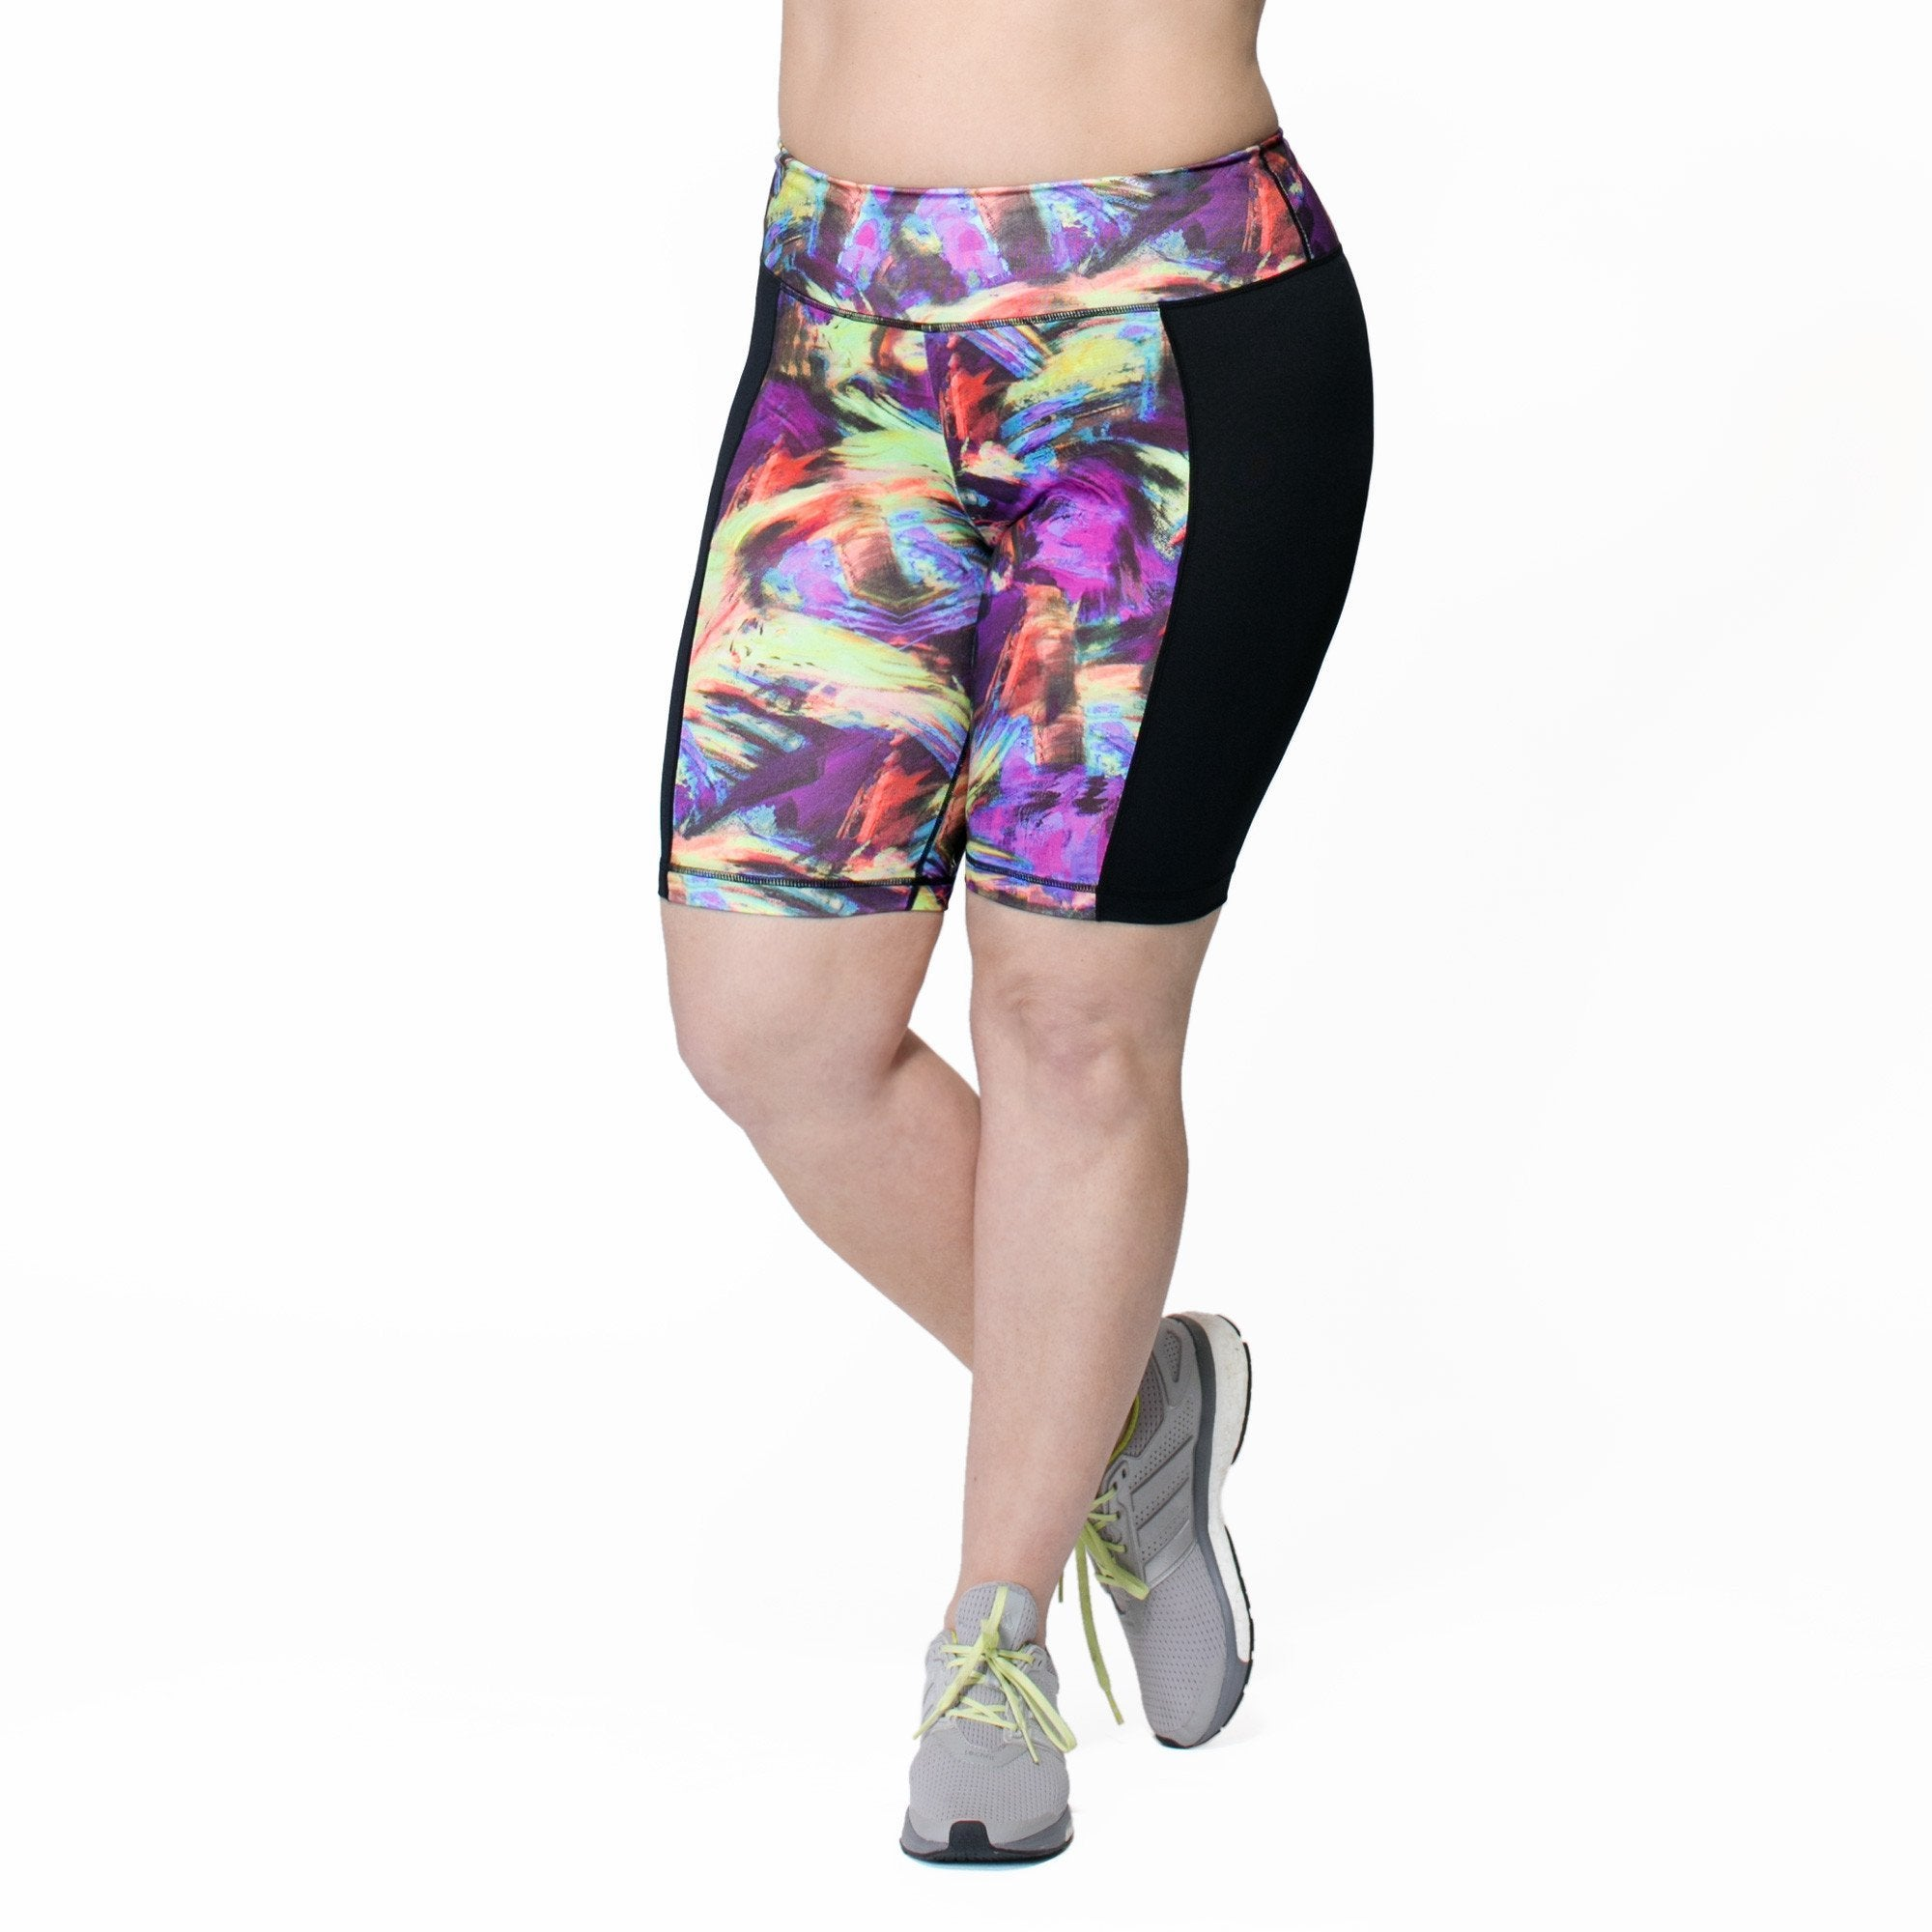 Anna Bike Short - Rainbeau Curves, 14/16 / Swift Strokes, activewear, athleisure, fitness, workout, gym, performance, womens, ladies, plus size, curvy, full figured, spandex, cotton, polyester - 1